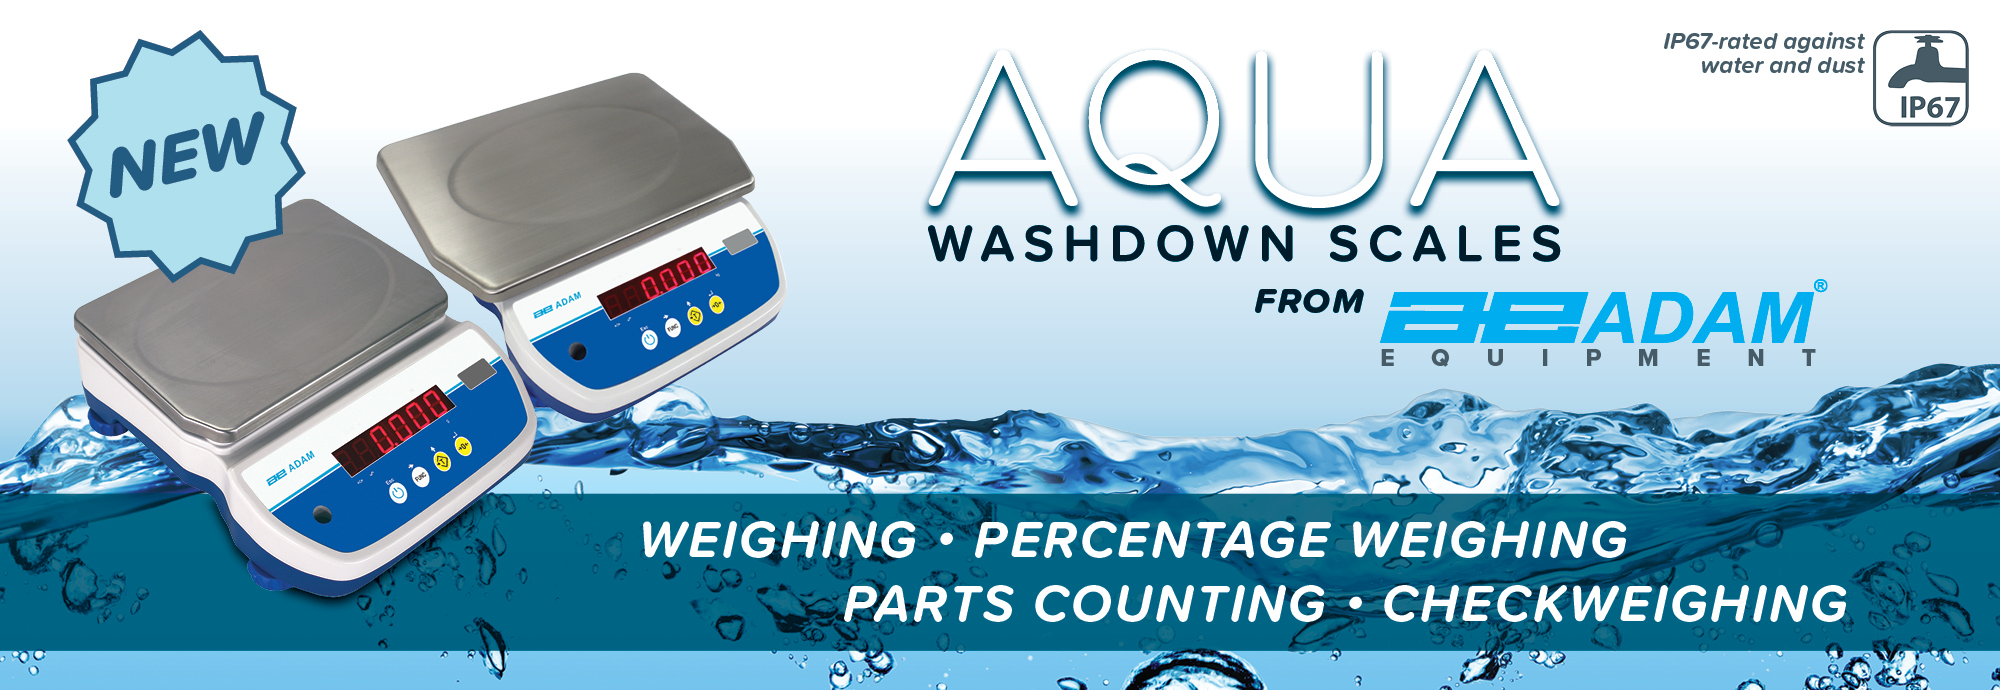 Aqua Washdown Bench Scale